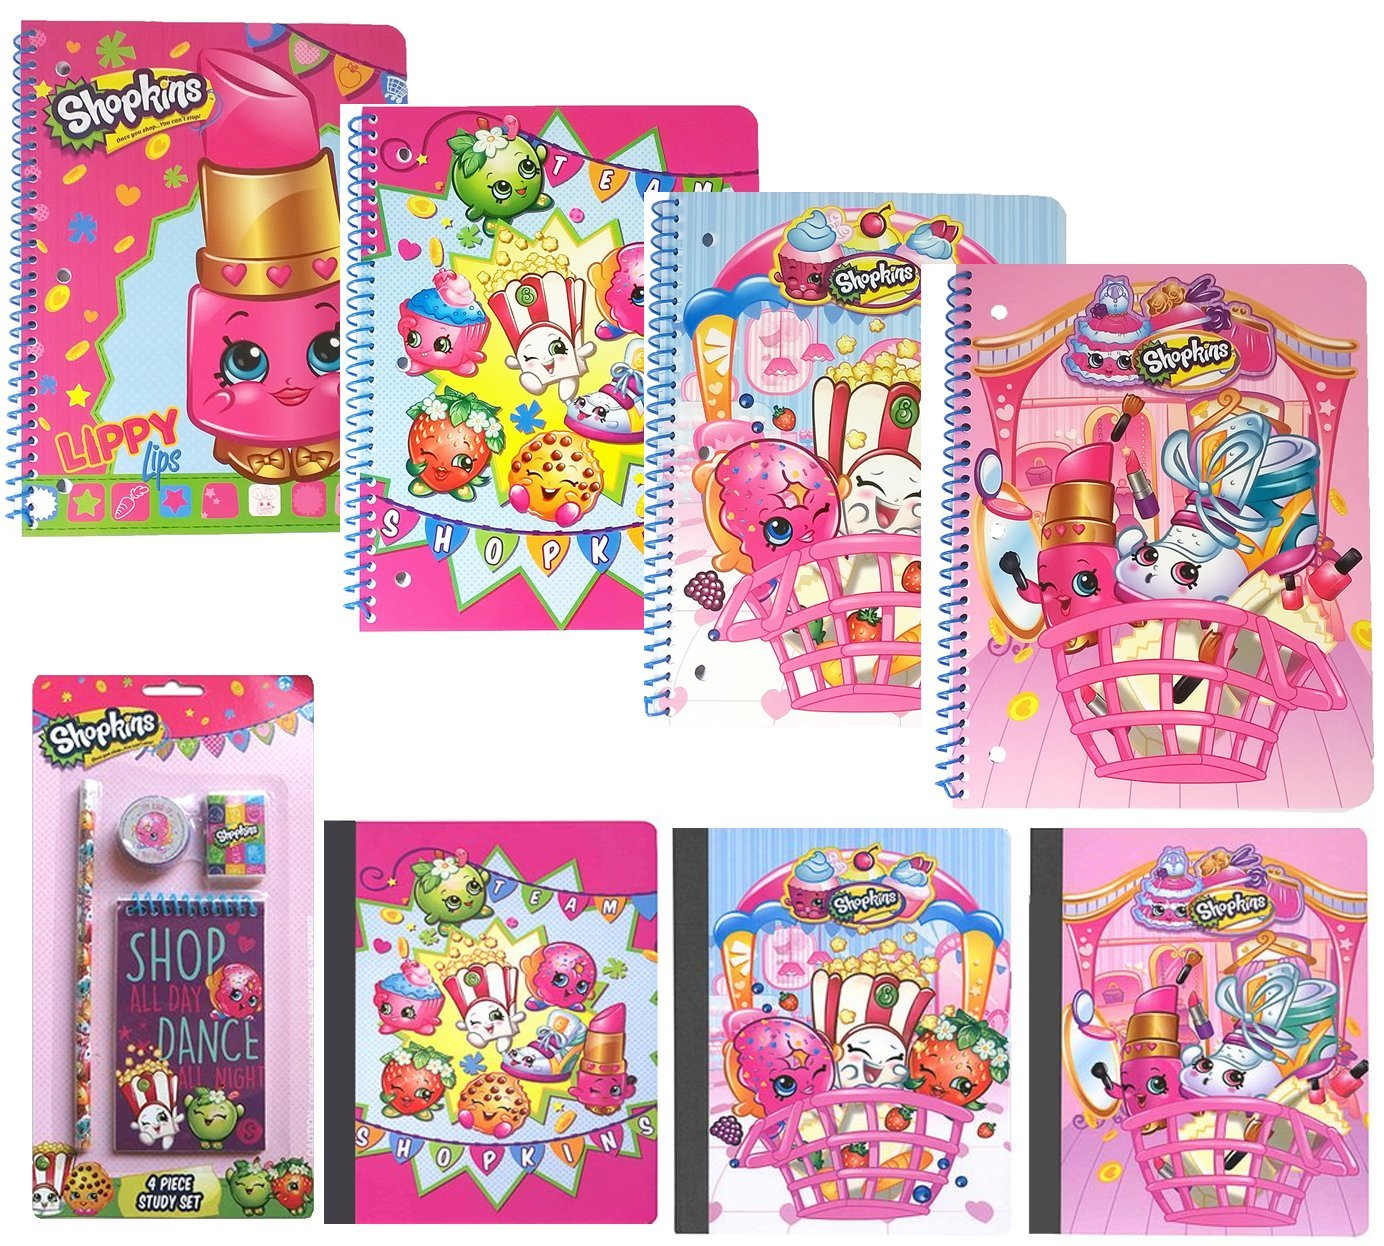 'Value pack Shopkins School Party Favors Gift Supplies 4 Spiral Notebooks, 3 Composition books and 1 Study Kit (Pencil Sharpener Eraser Memo Pad)